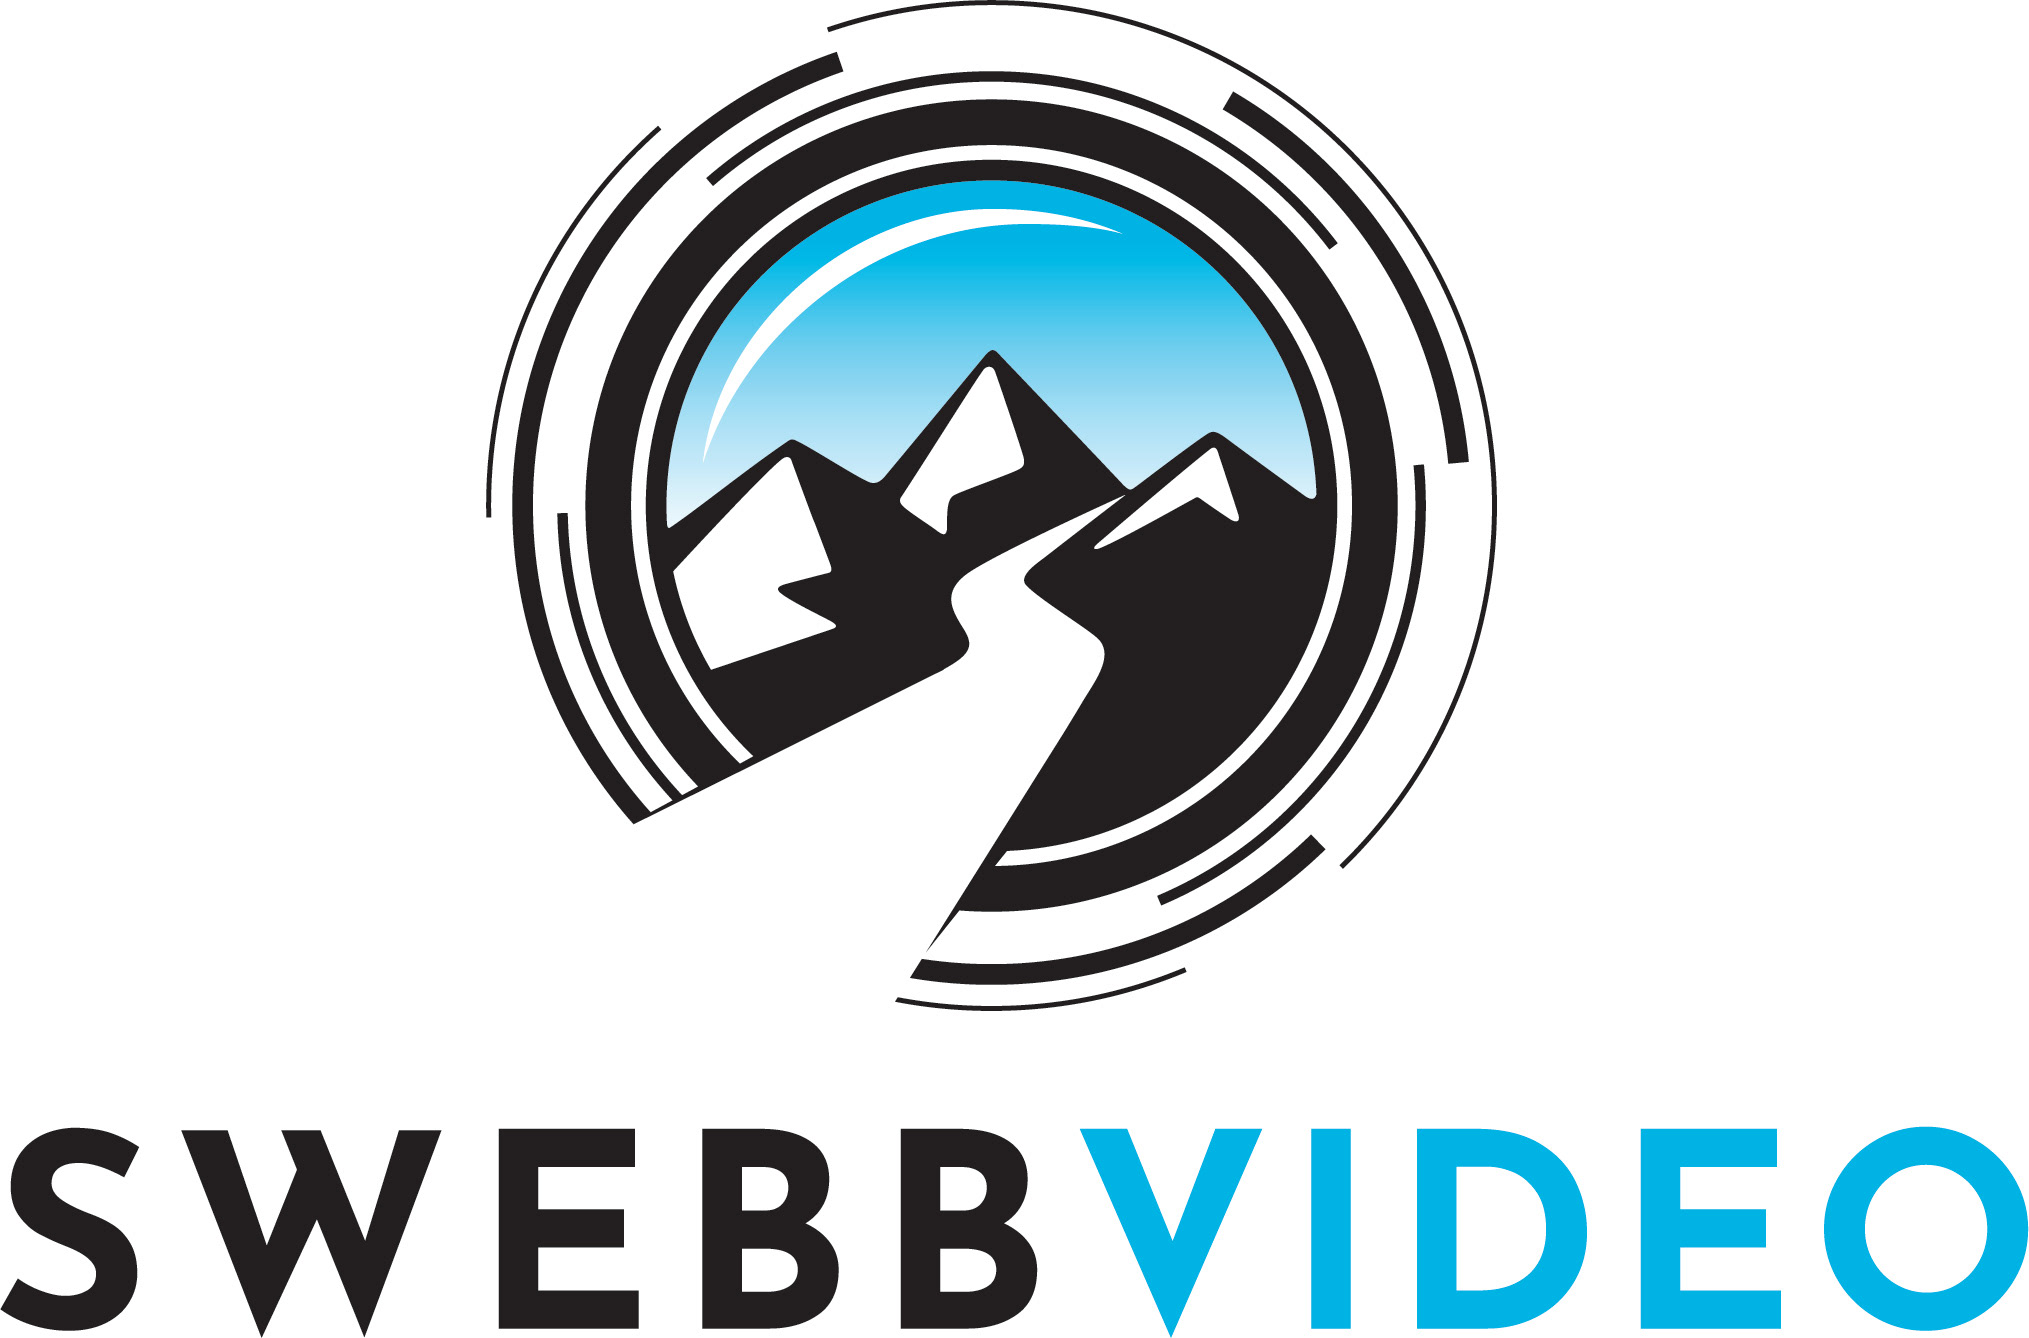 SwebbVideo, LLC